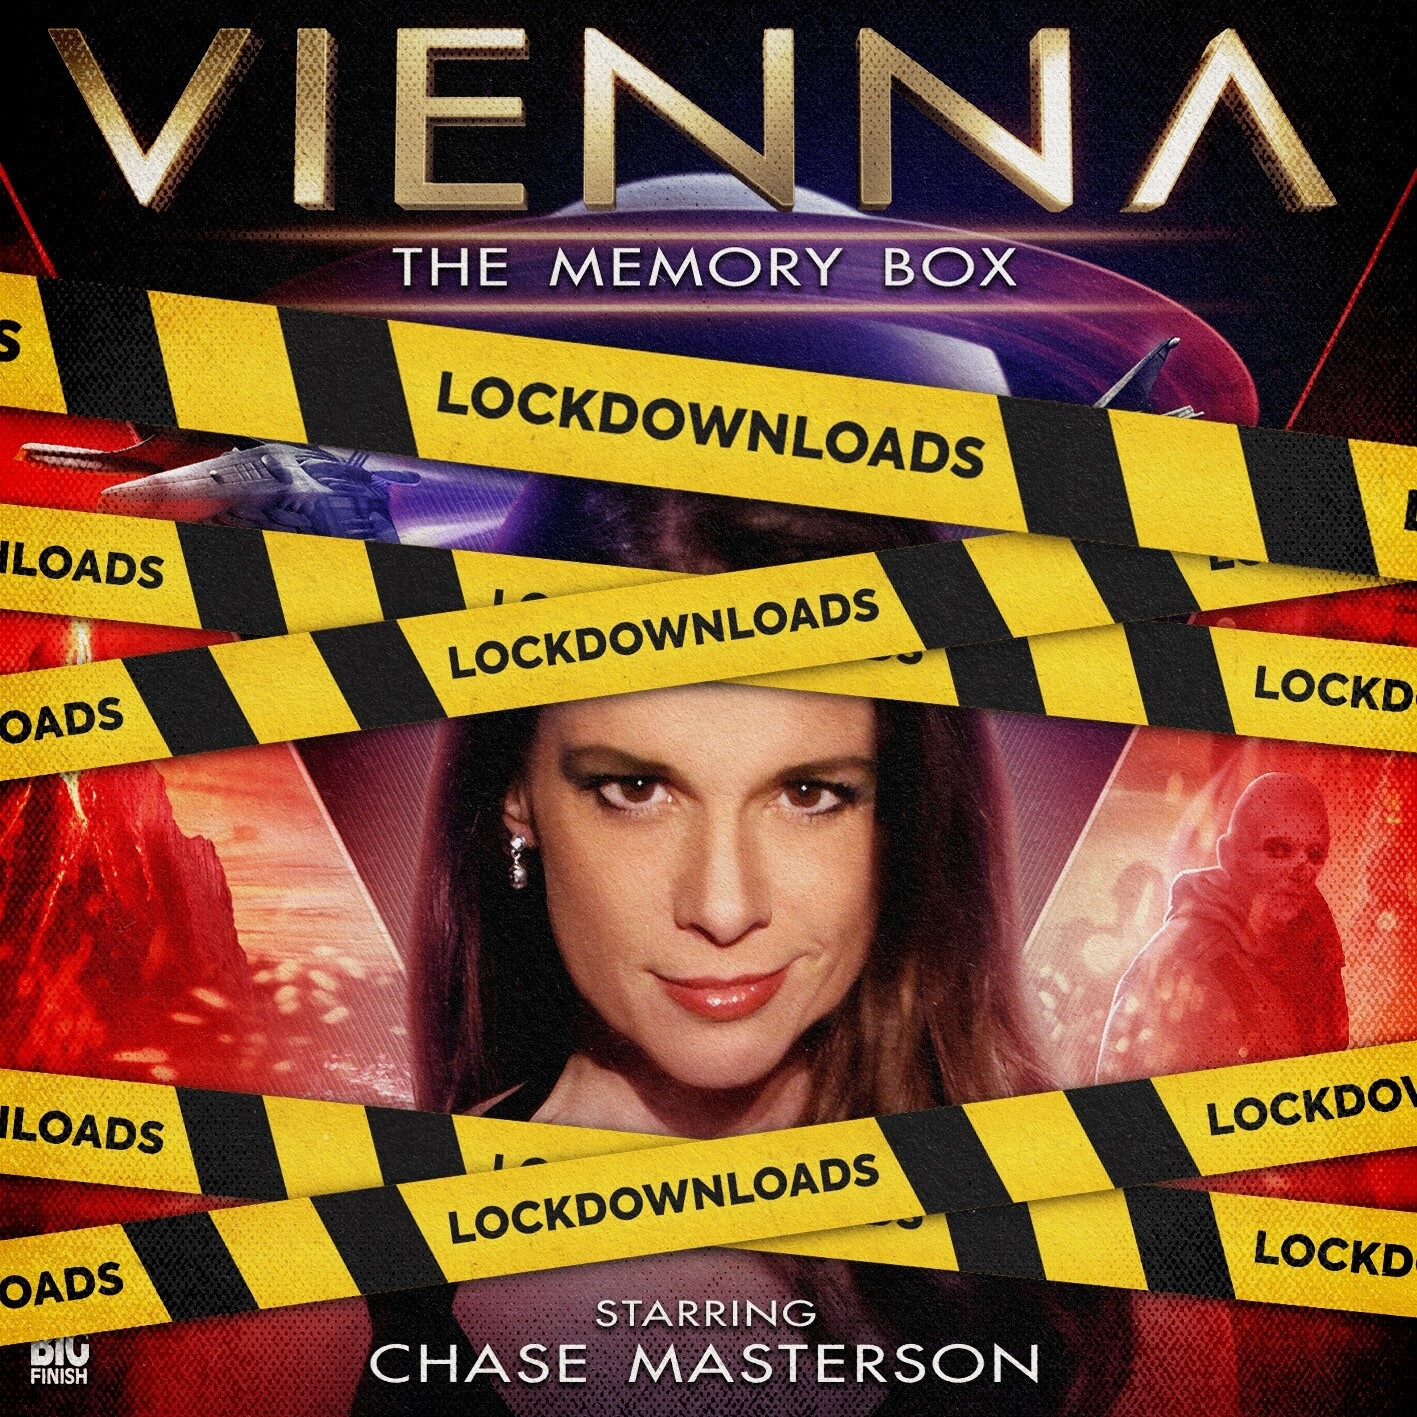 Big Finish Ends Its Lockdownloads Project with Vienna: The Memory Box